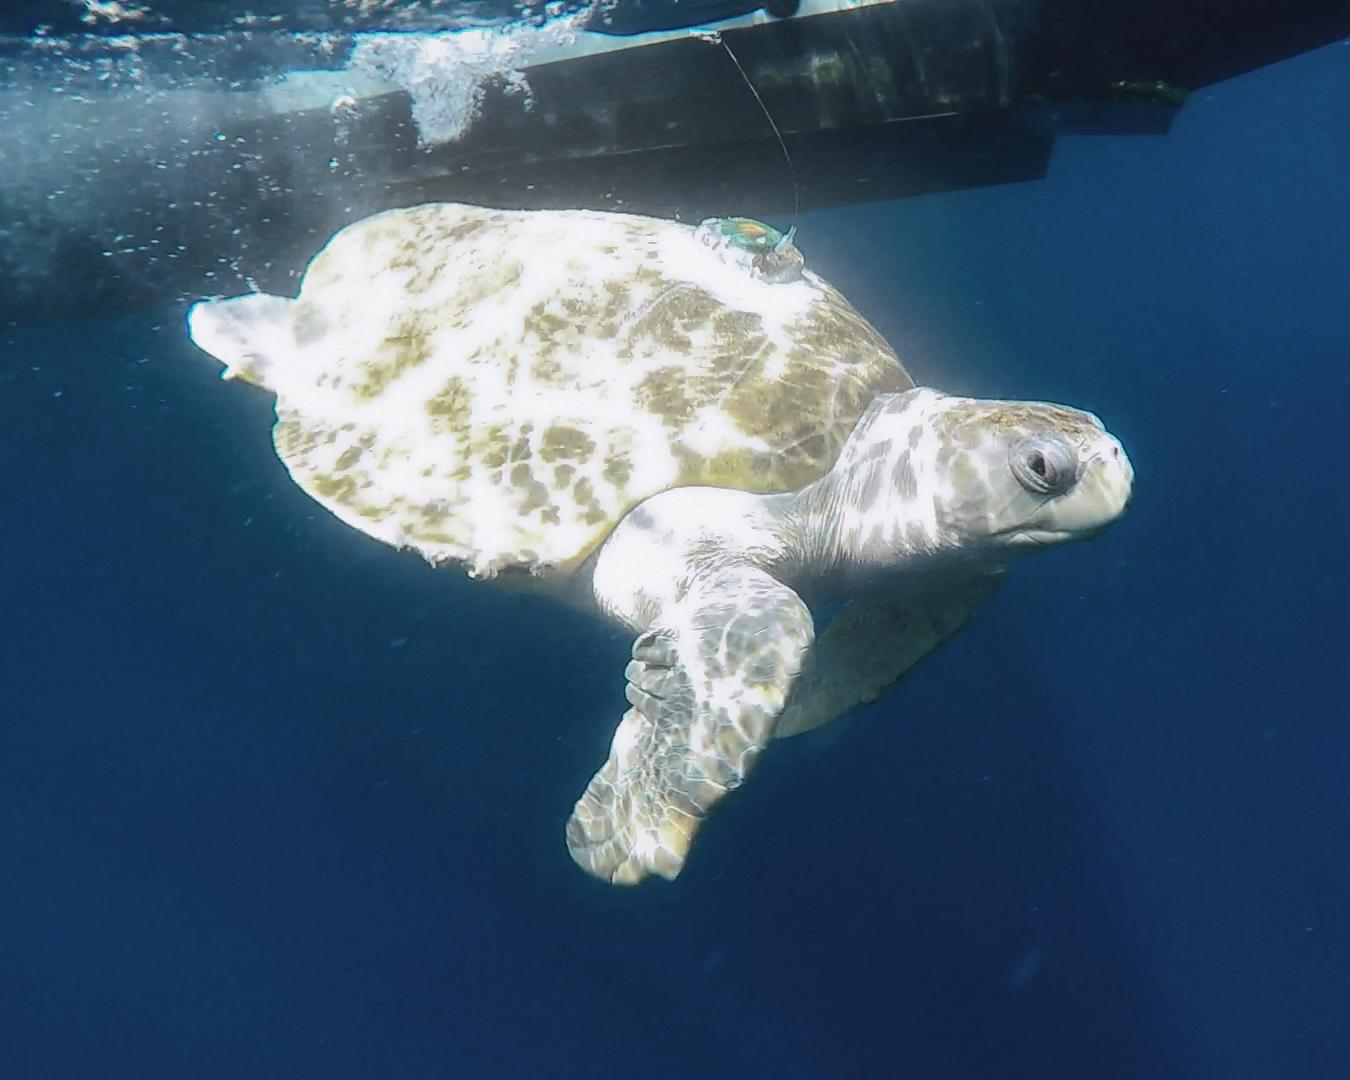 Tucker was rescued by the Seaside Aquarium in Oregon in December 2015, and like Lightning was one of that record-setting 10 turtles found that winter. Tucker was found comatose near Cannon Beach in Oregon and taken to the Seattle Aquarium for care. The Coast Guard flew Tucker to SeaWorld San Diego in April 2016. (SeaWorld)